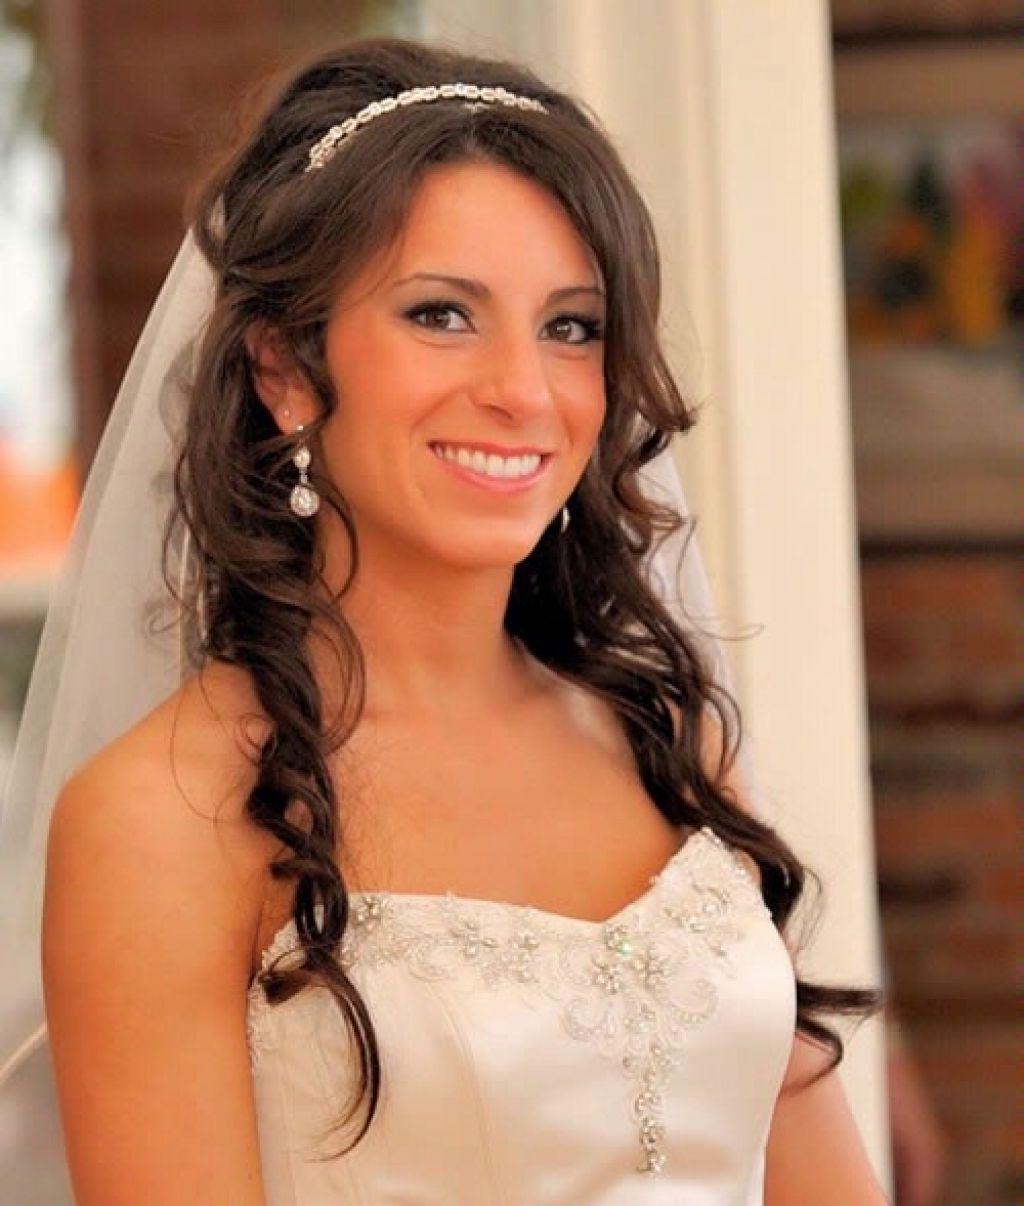 Wedding Hairstyles For Long Hair With Veil – Hairstyle For Women & Man With Preferred Wedding Hairstyles For Long Hair Down With Tiara (View 7 of 15)